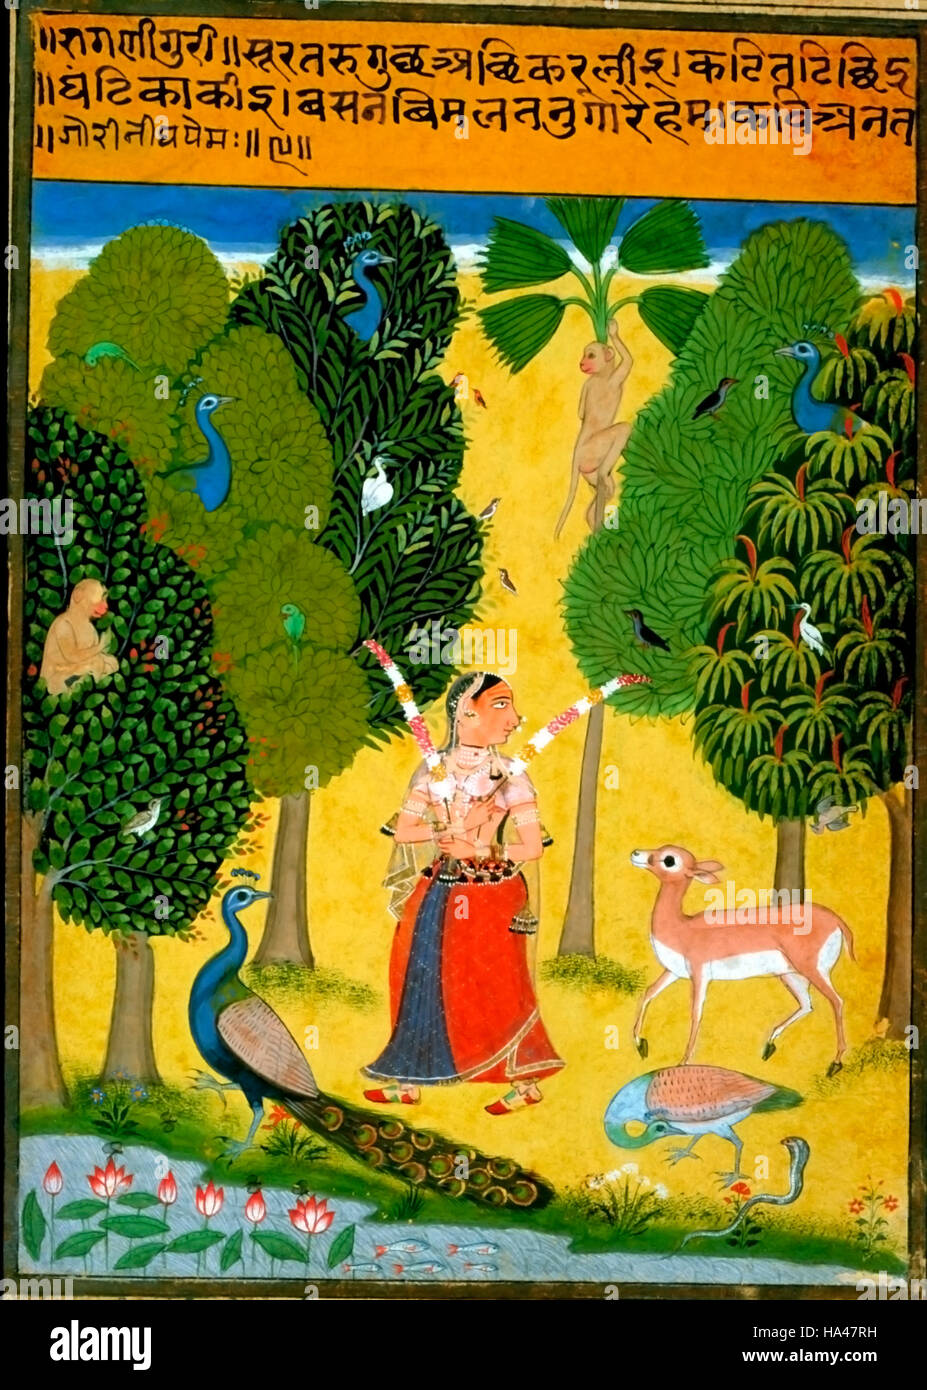 Ragamala Painting: Gauri Ragini: The painting depicts  a lady who is longing for and dreaming of her husband or - Stock Image